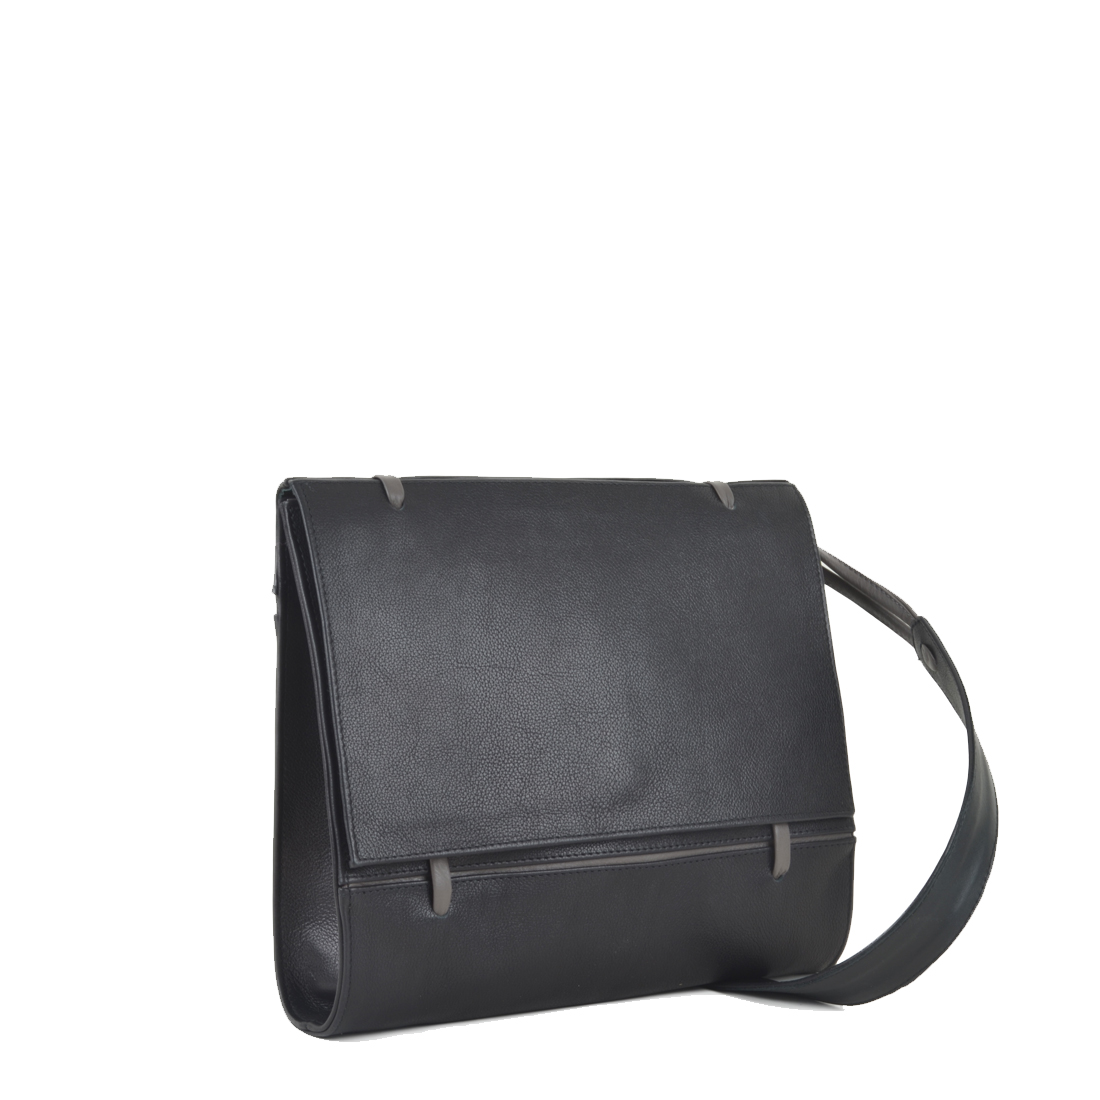 Elsa Black with grigio Leather Across Body Bag